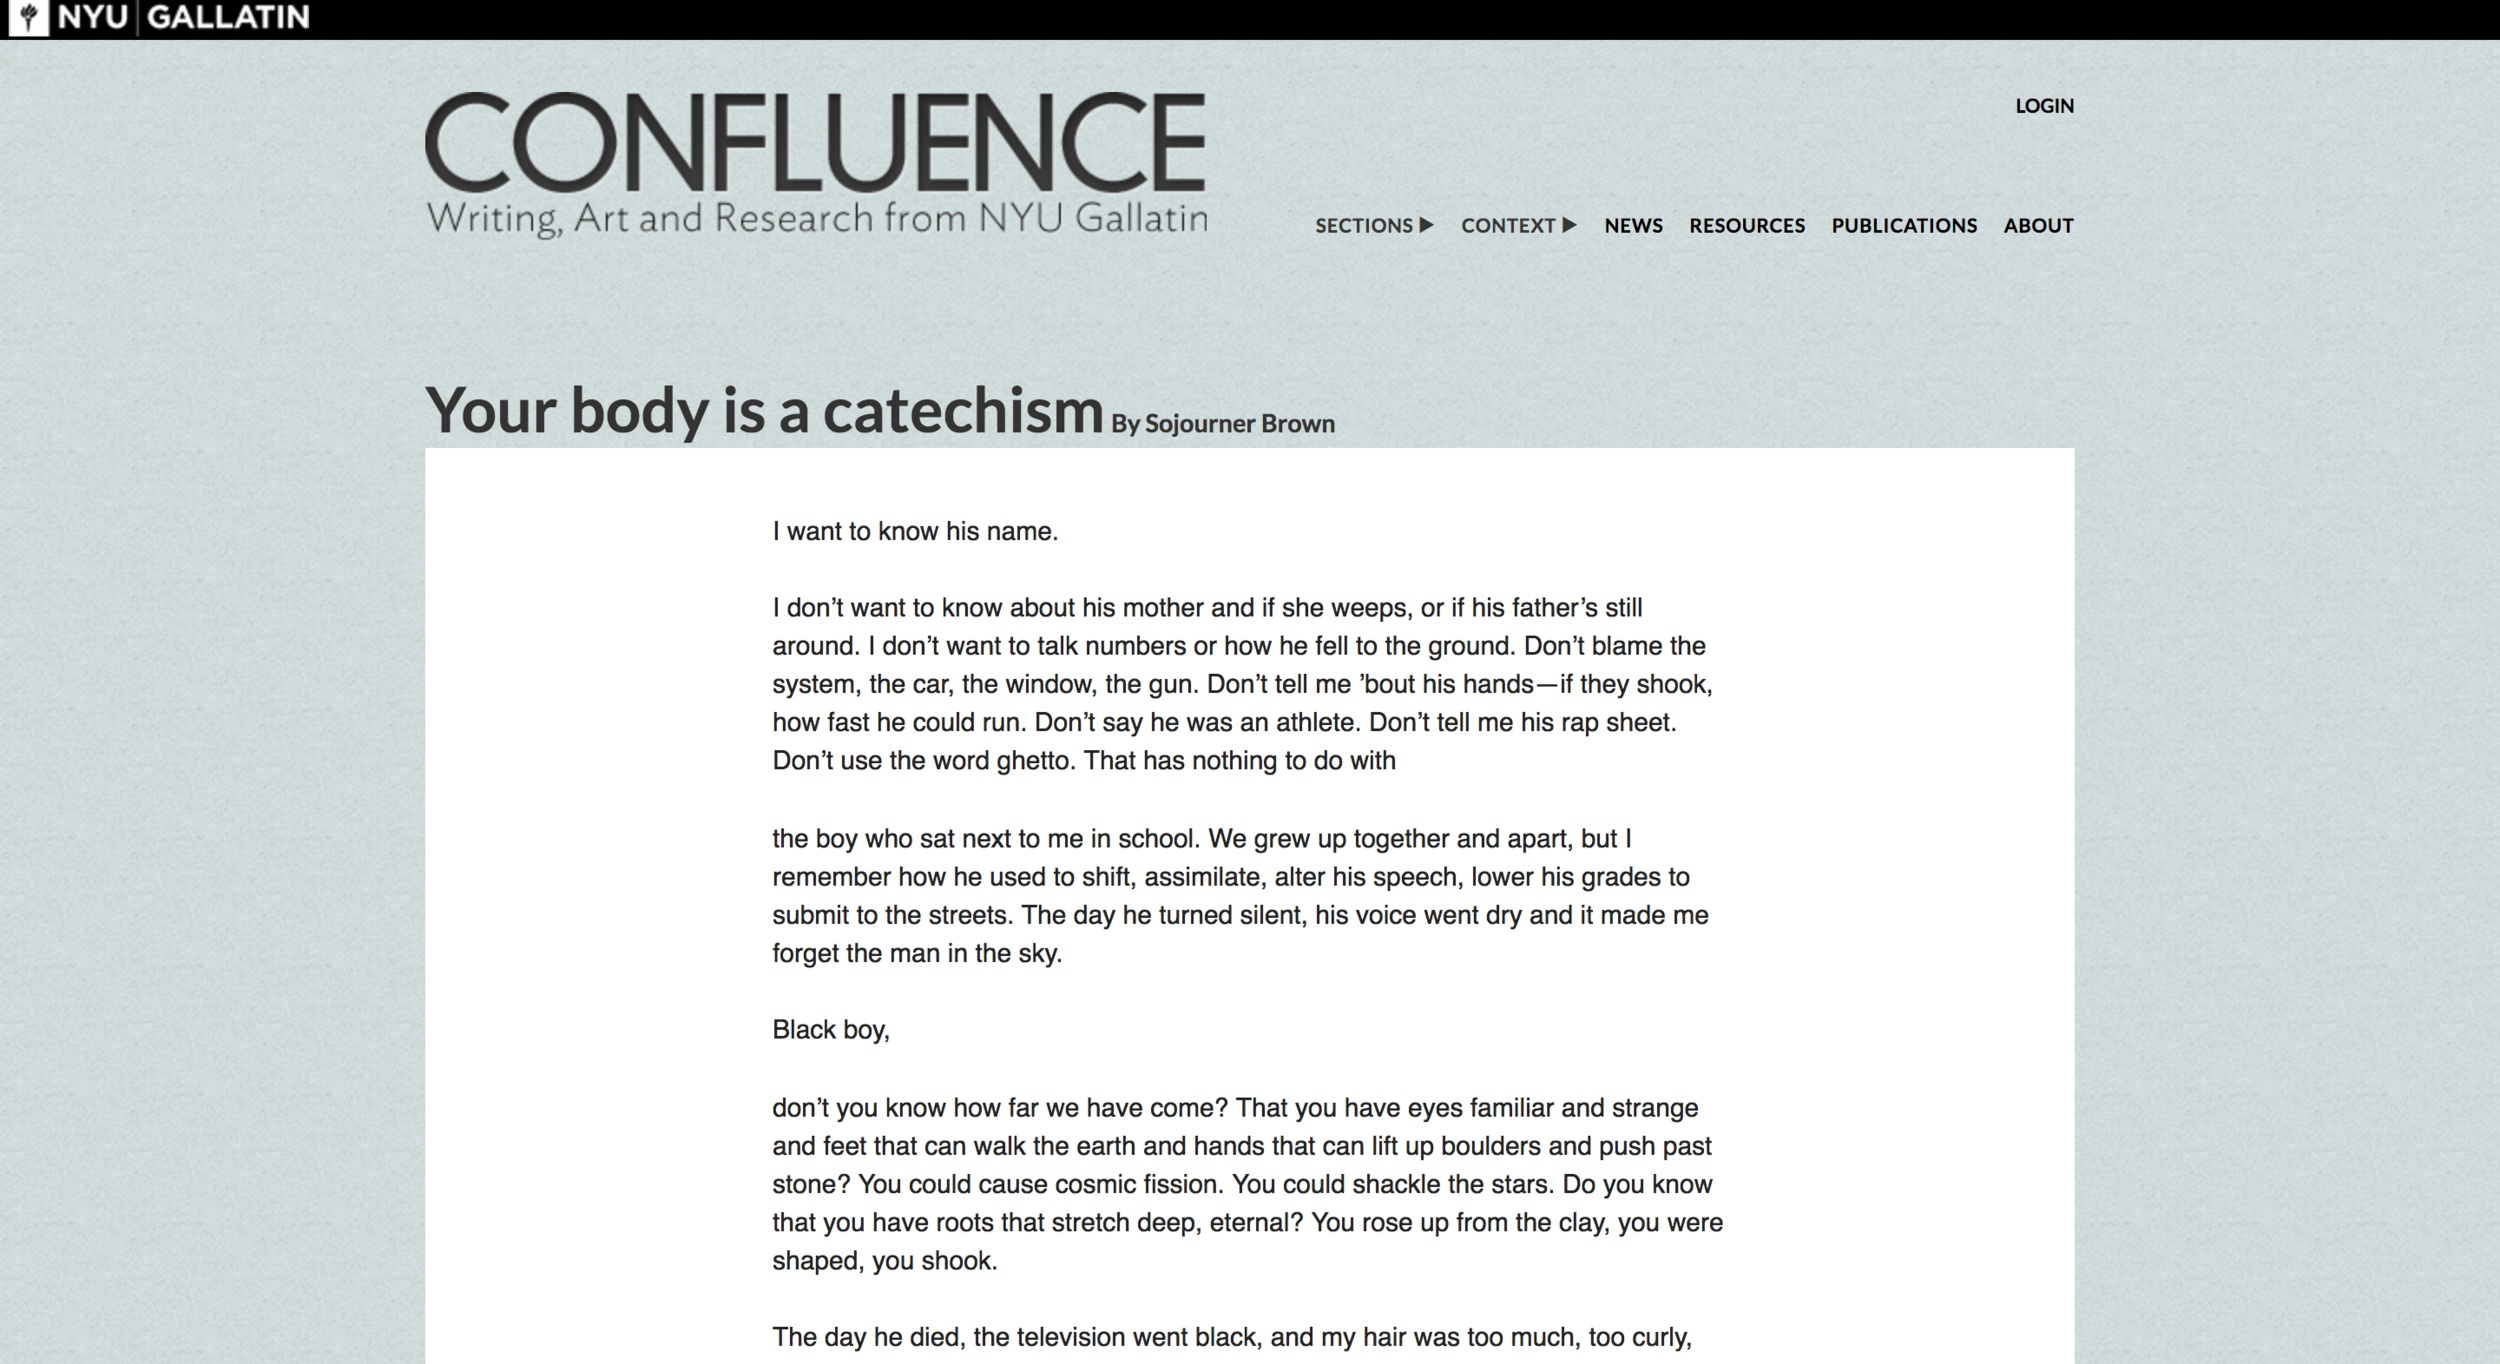 Via CONFLUENCE  Poetry selected to be featured